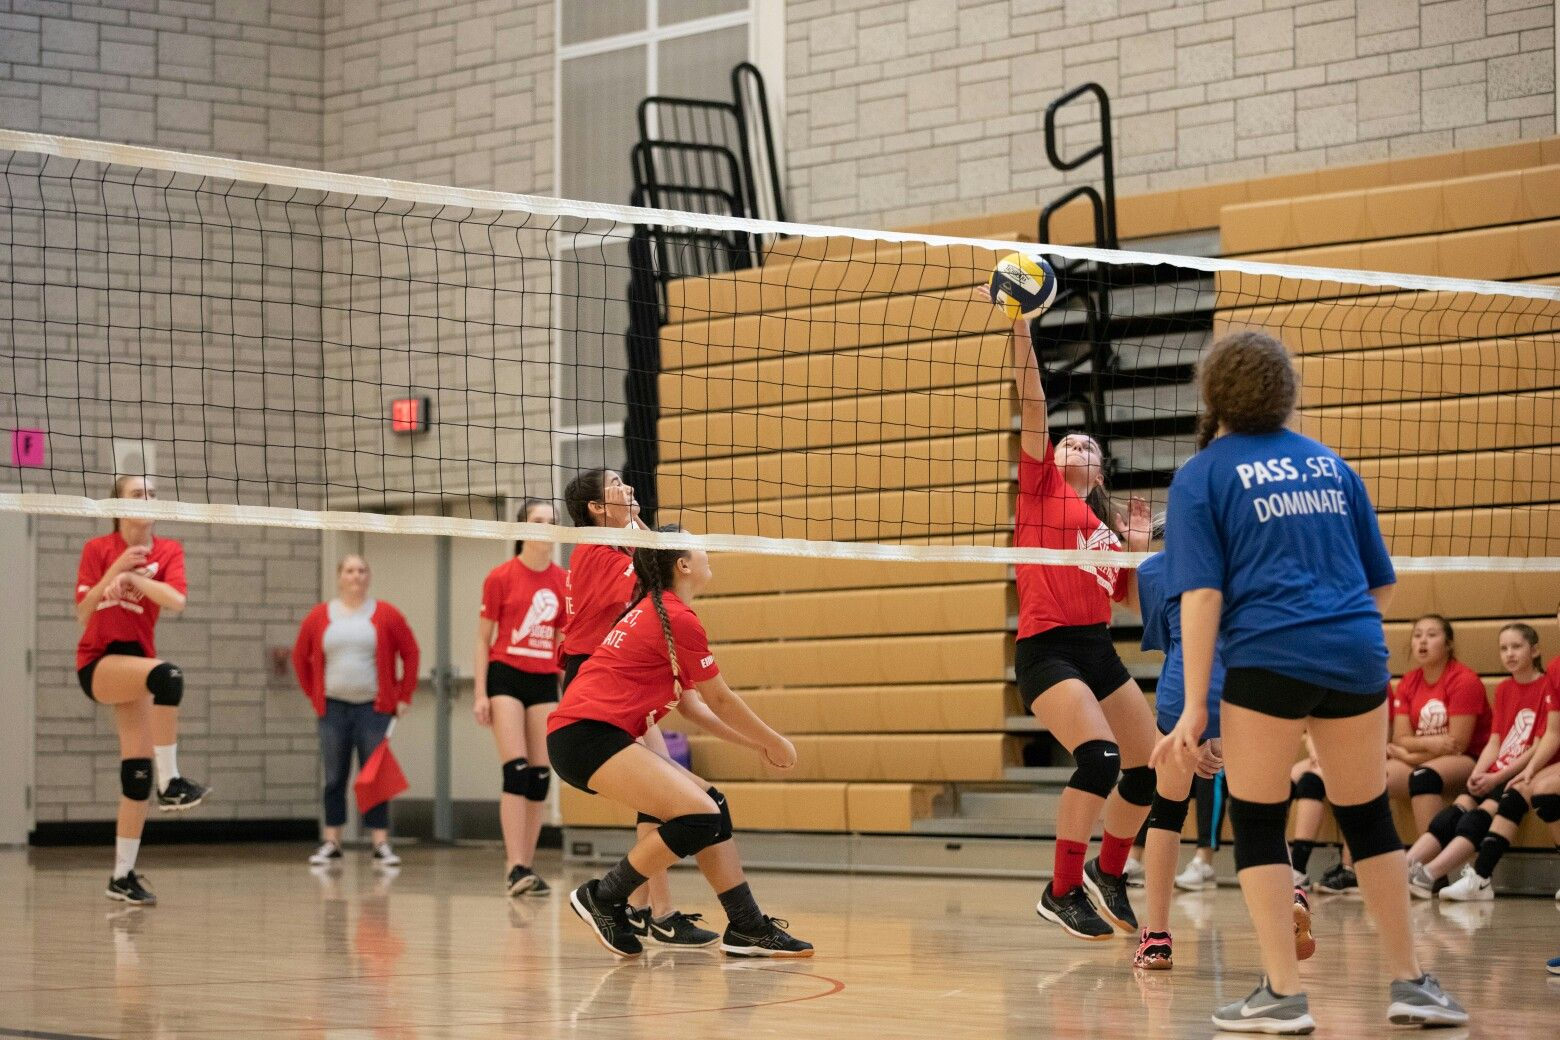 Pin By Dlorrah Harrold On Volleyball Volleyball Exercise Basketball Court